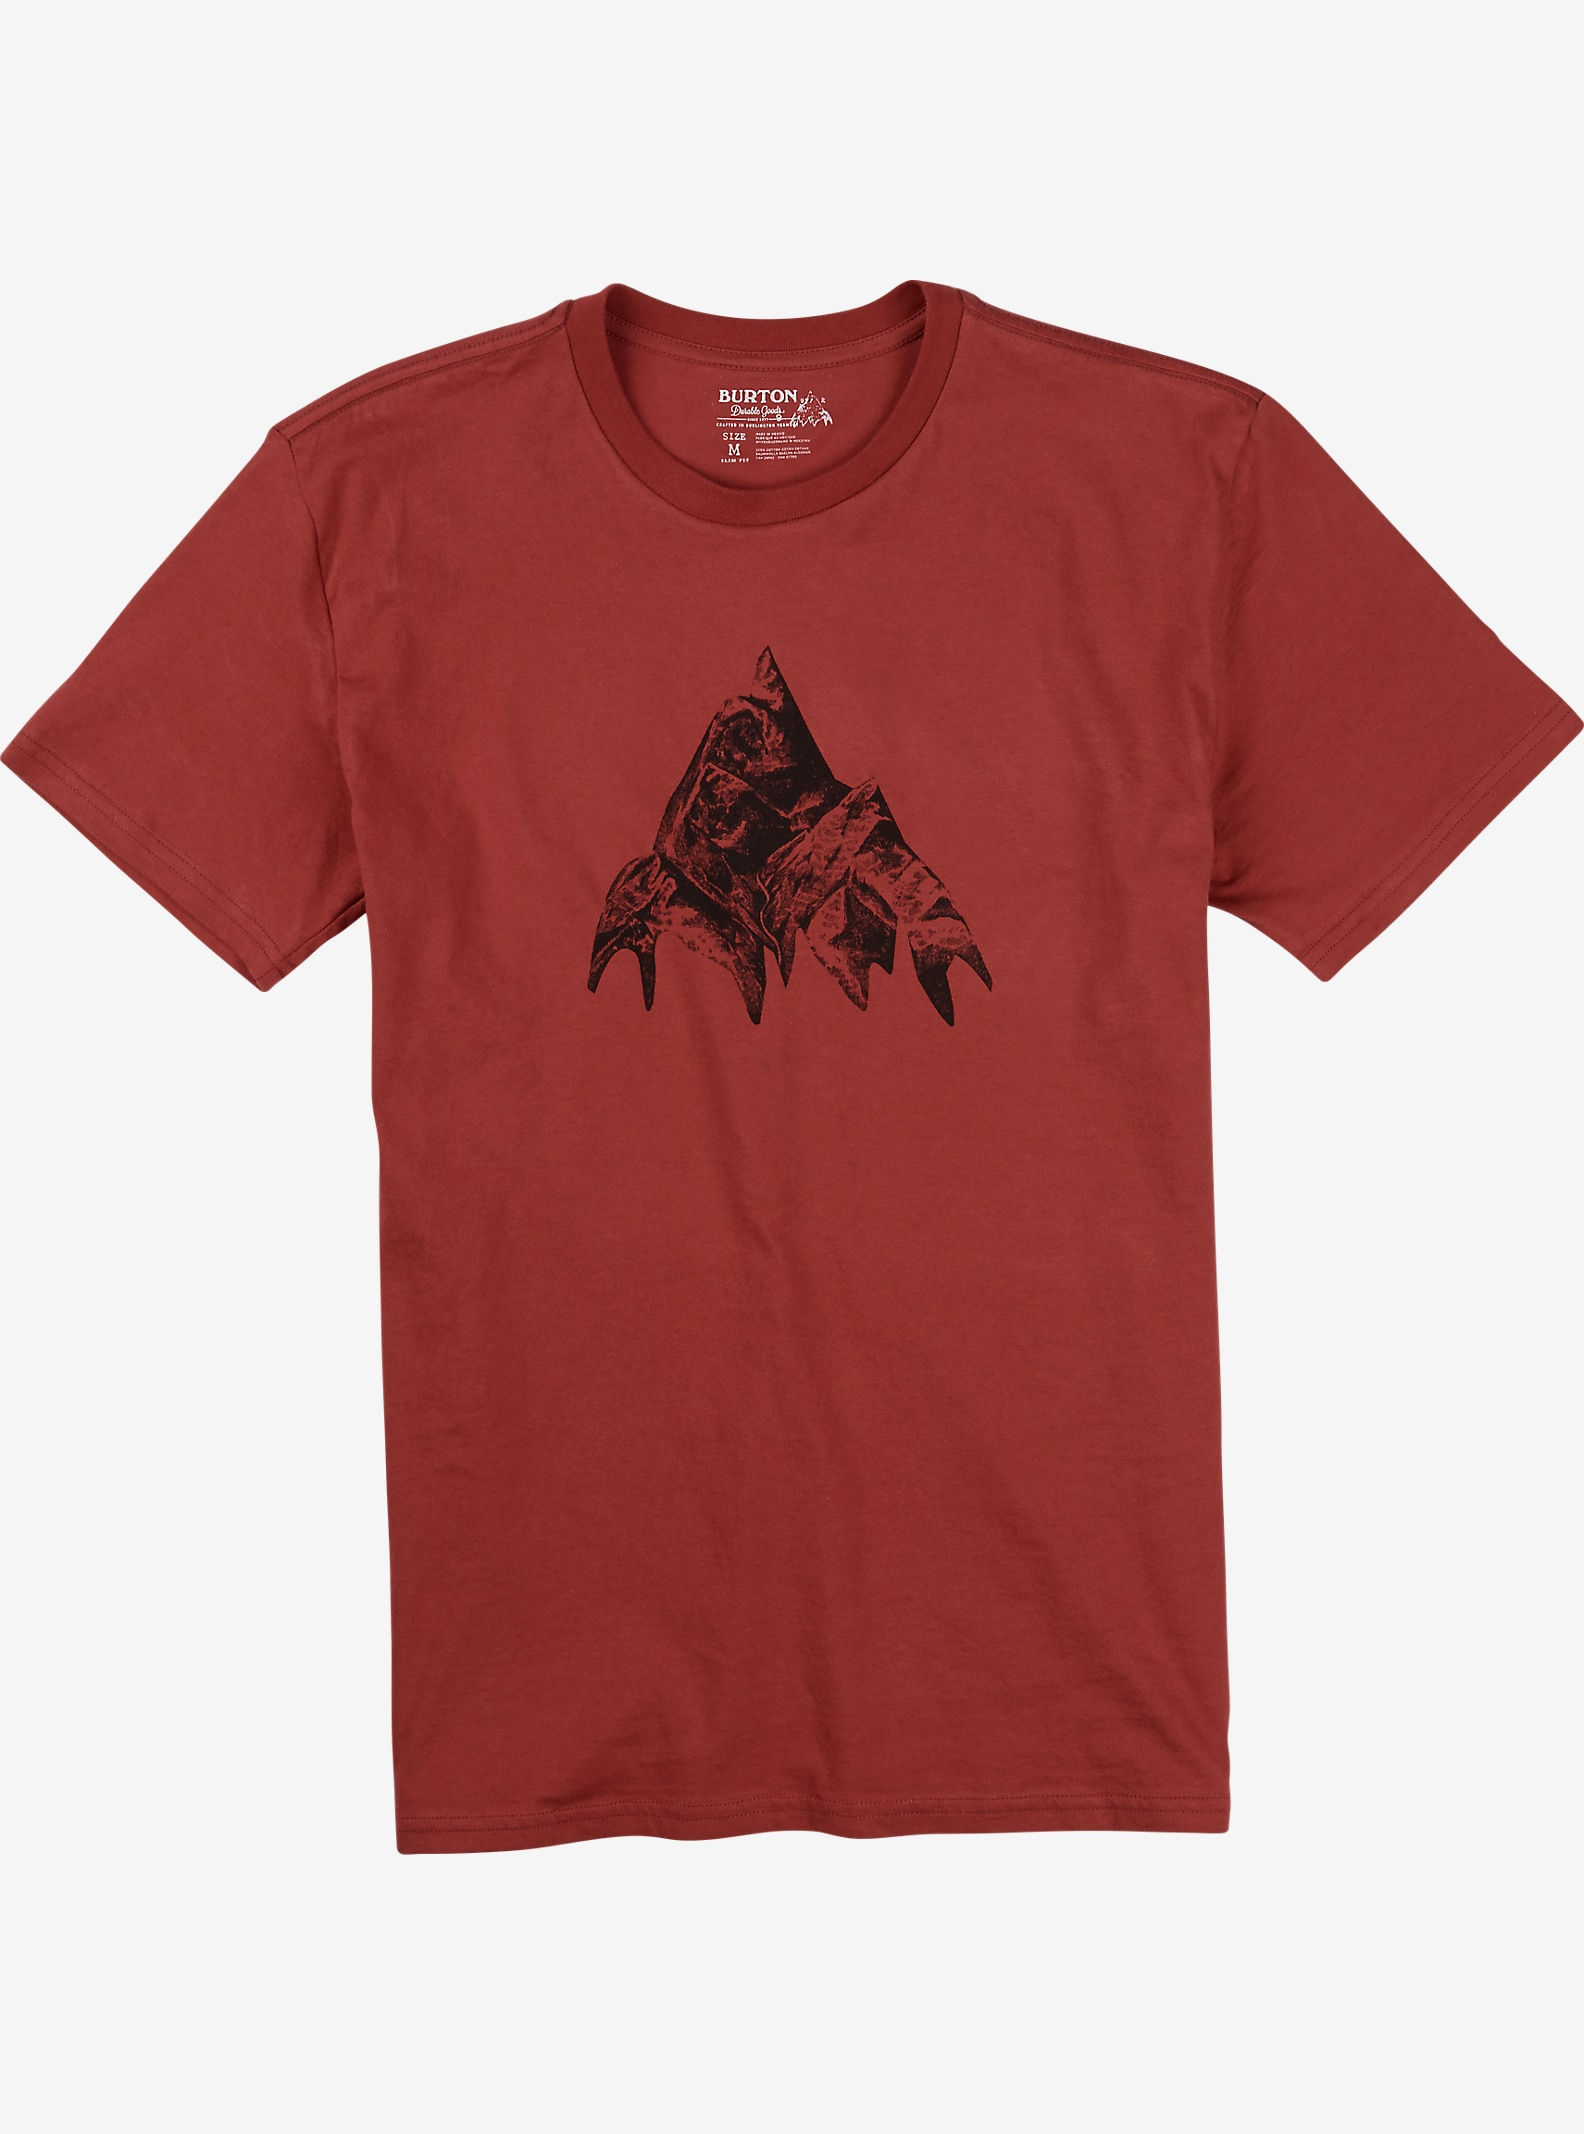 Burton Matterhorn Slim Fit Short Sleeve T Shirt shown in Dusty Cedar